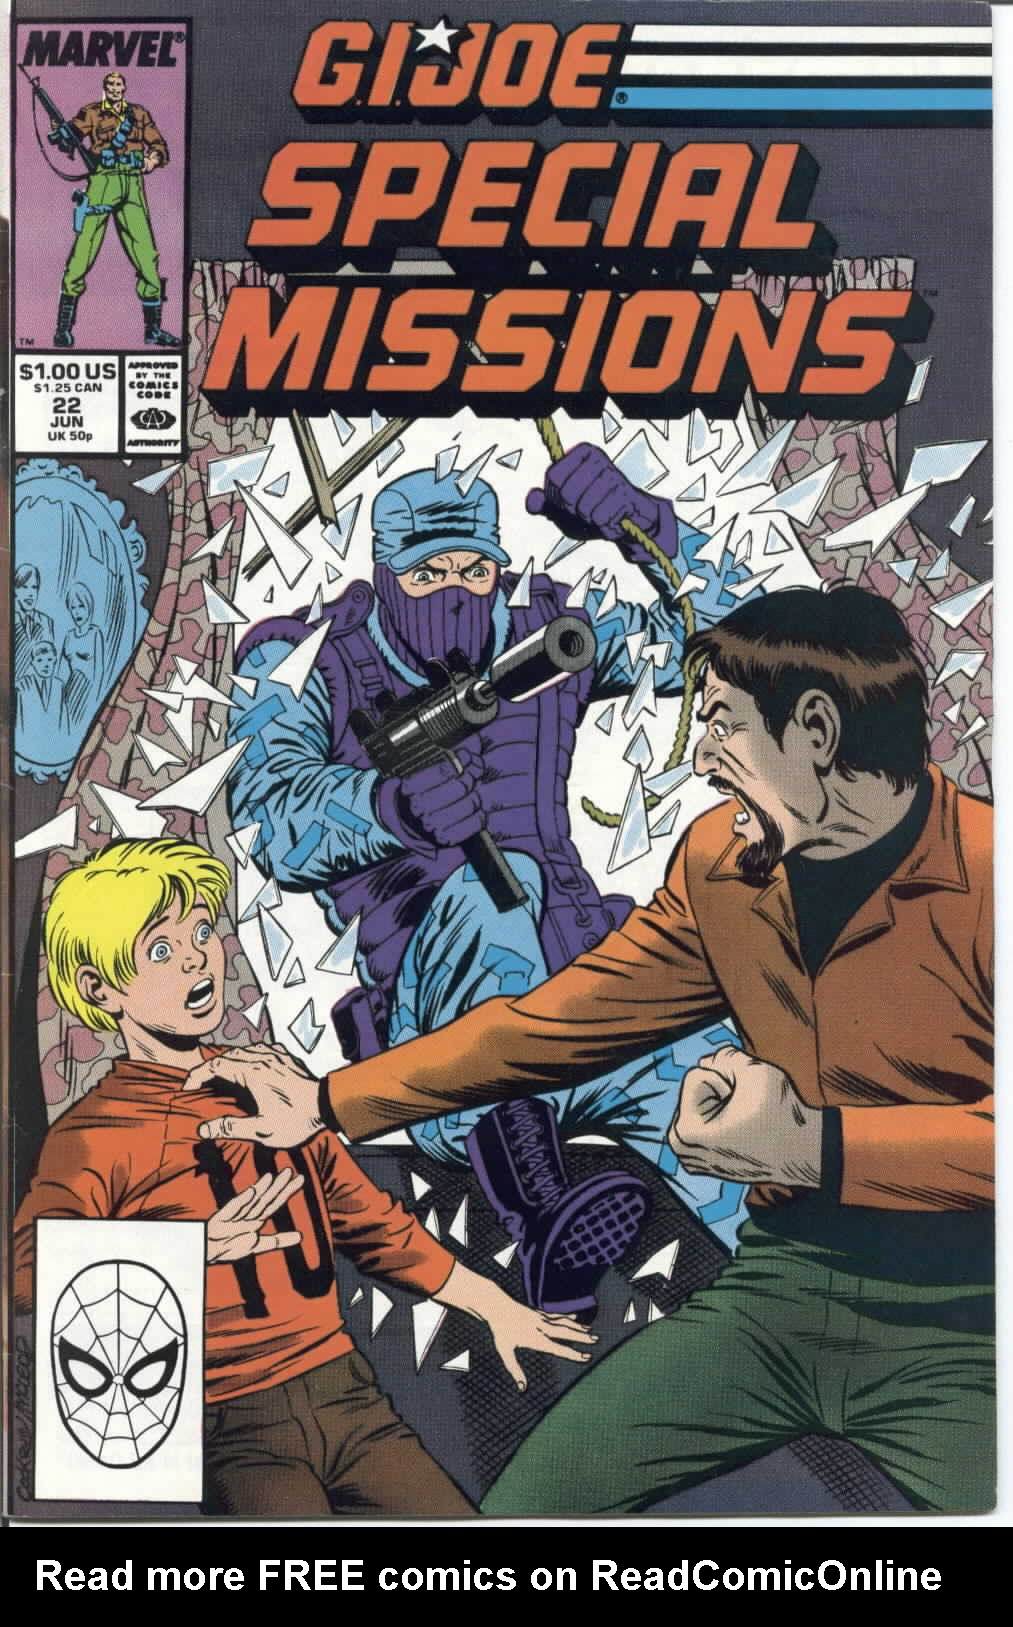 G.I. Joe Special Missions 22 Page 1